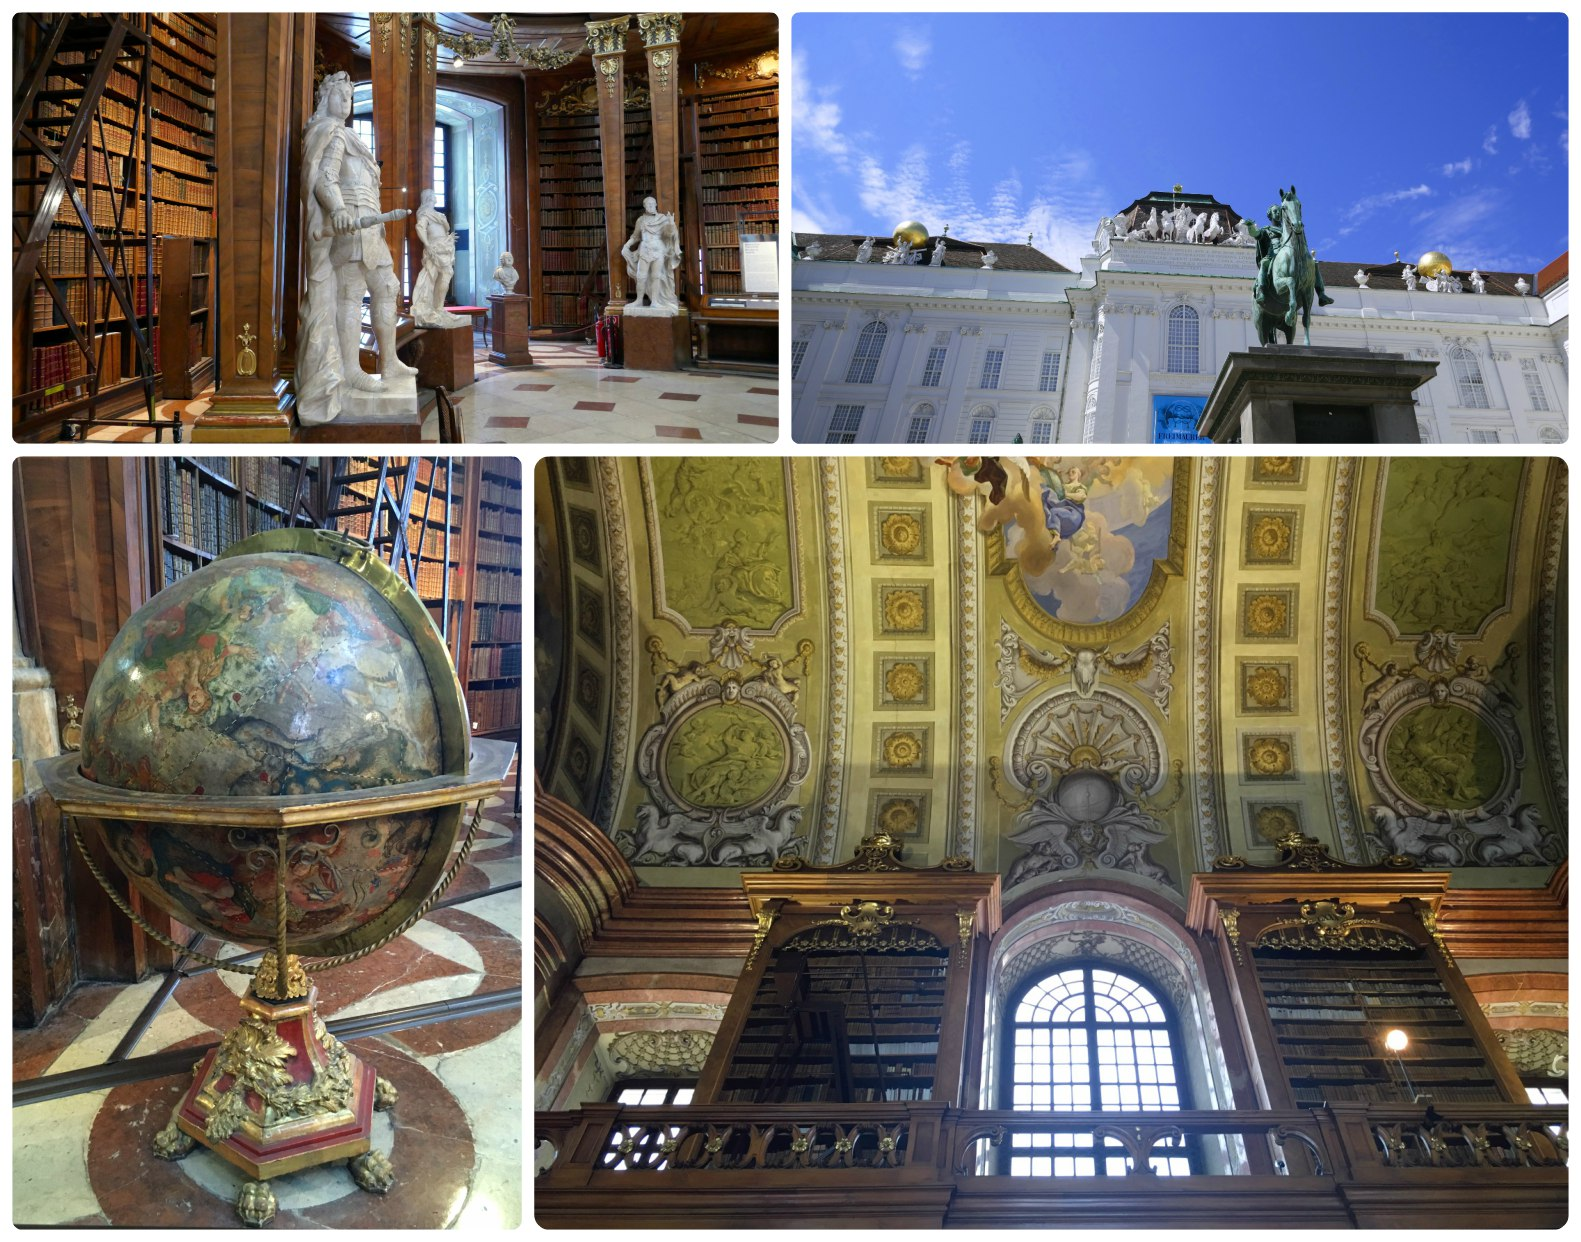 Step inside State Hall and you'll immediately understand why this is considered one of the world's most beautiful libraries.